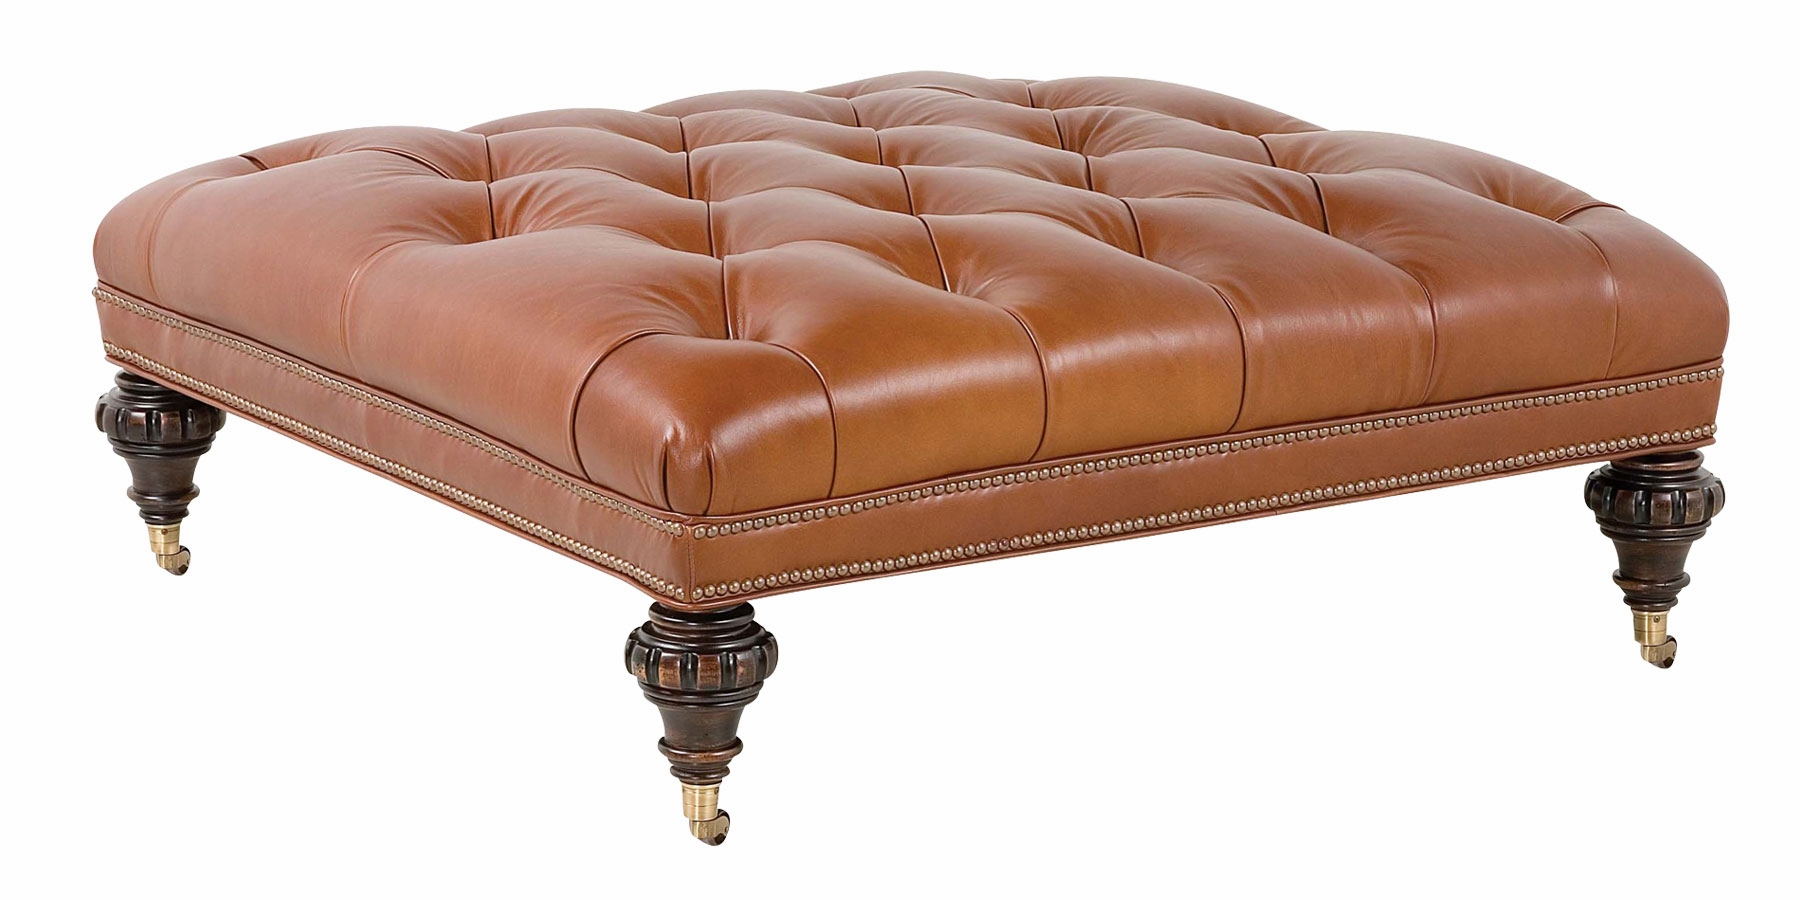 Large Square Traditional Tufted Leather Ottoman Club